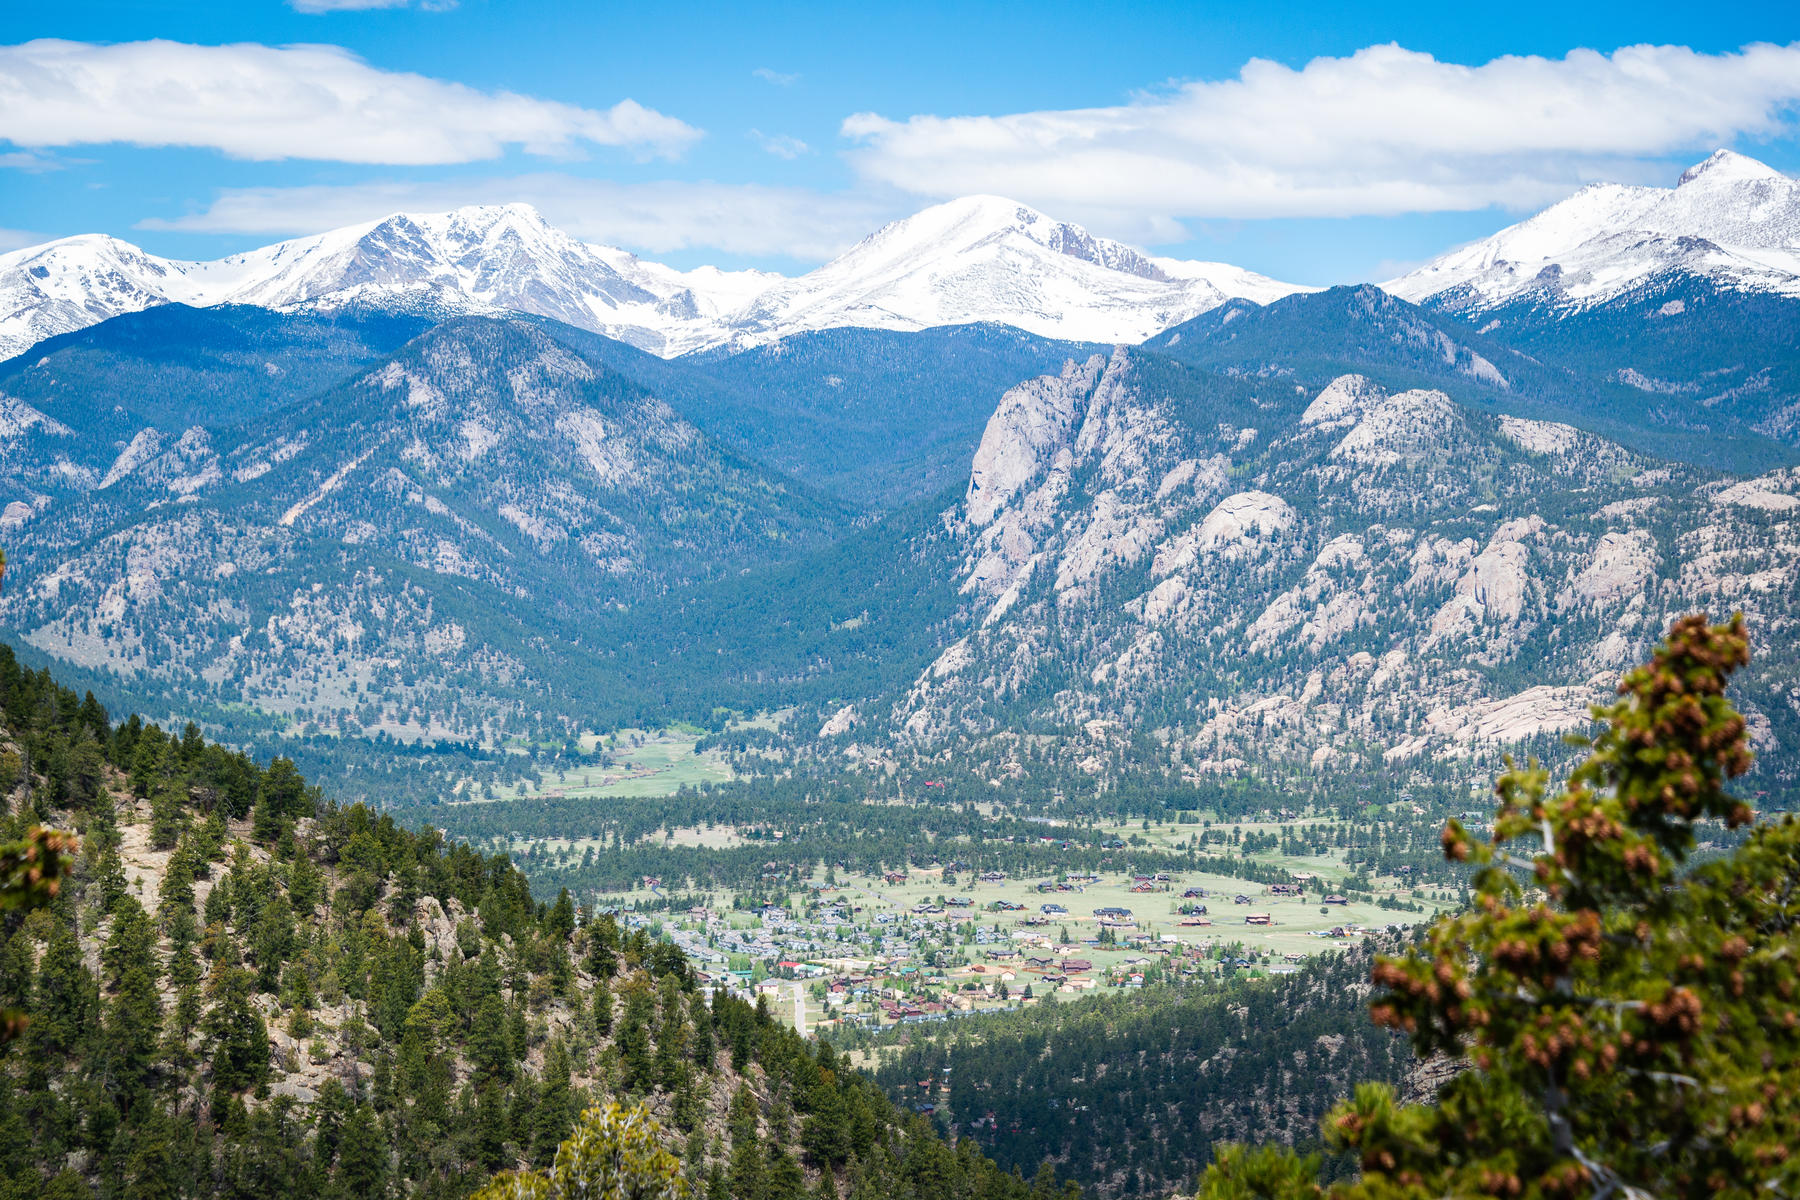 Single Family Homes for Sale at Solitude And Serenity Abounds 127 Alpine Dr Estes Park, Colorado 80517 United States